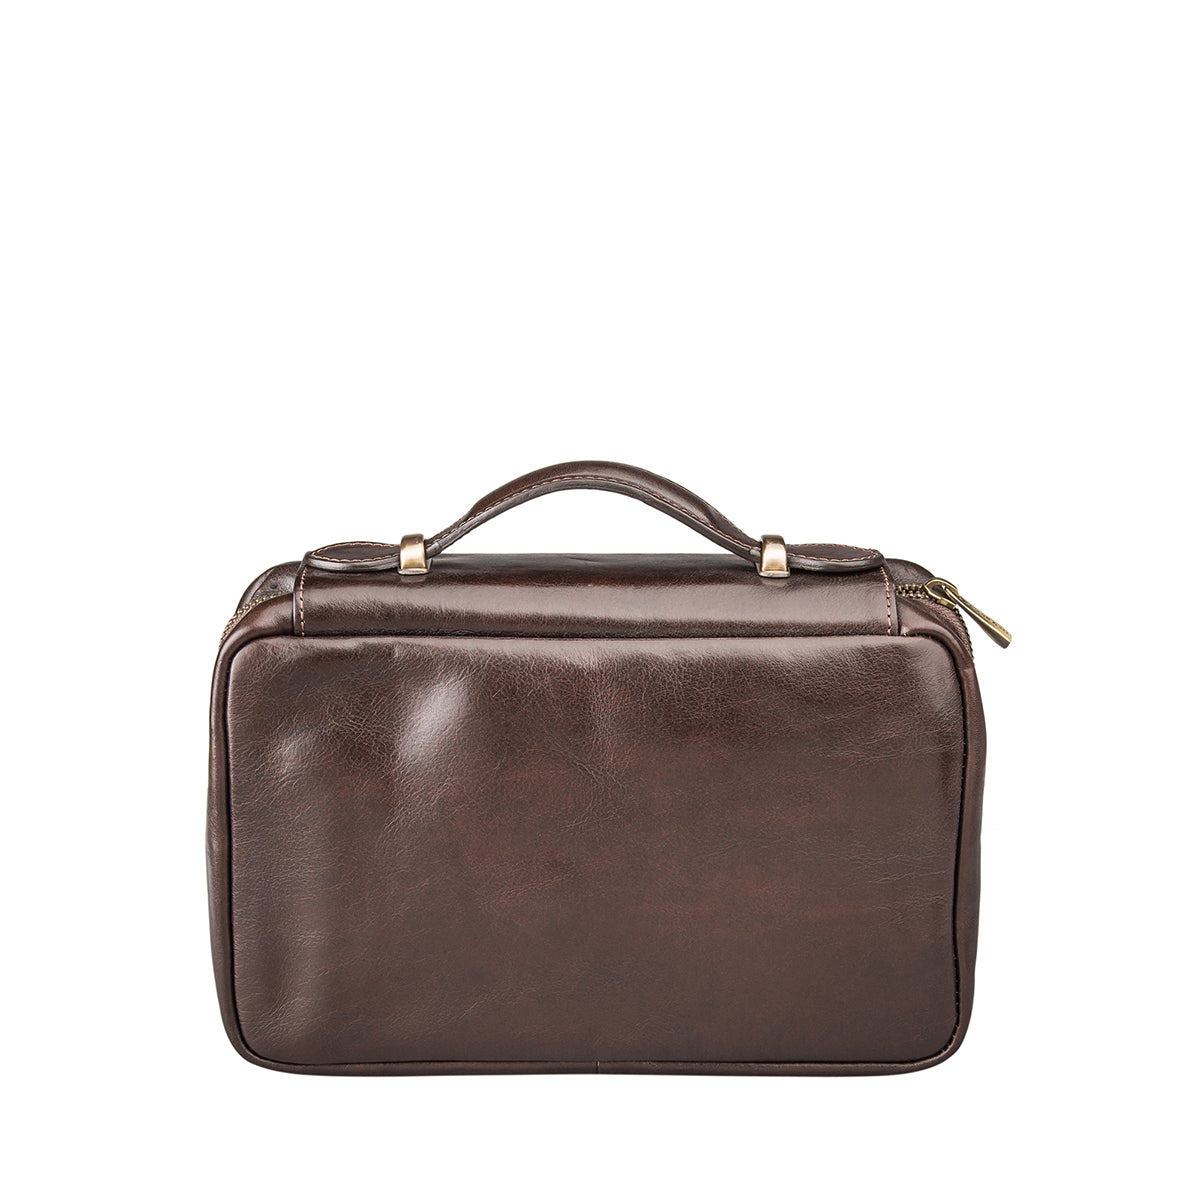 Image 4 of the 'Cascina' Chocolate Veg-Tanned Leather Makeup Case